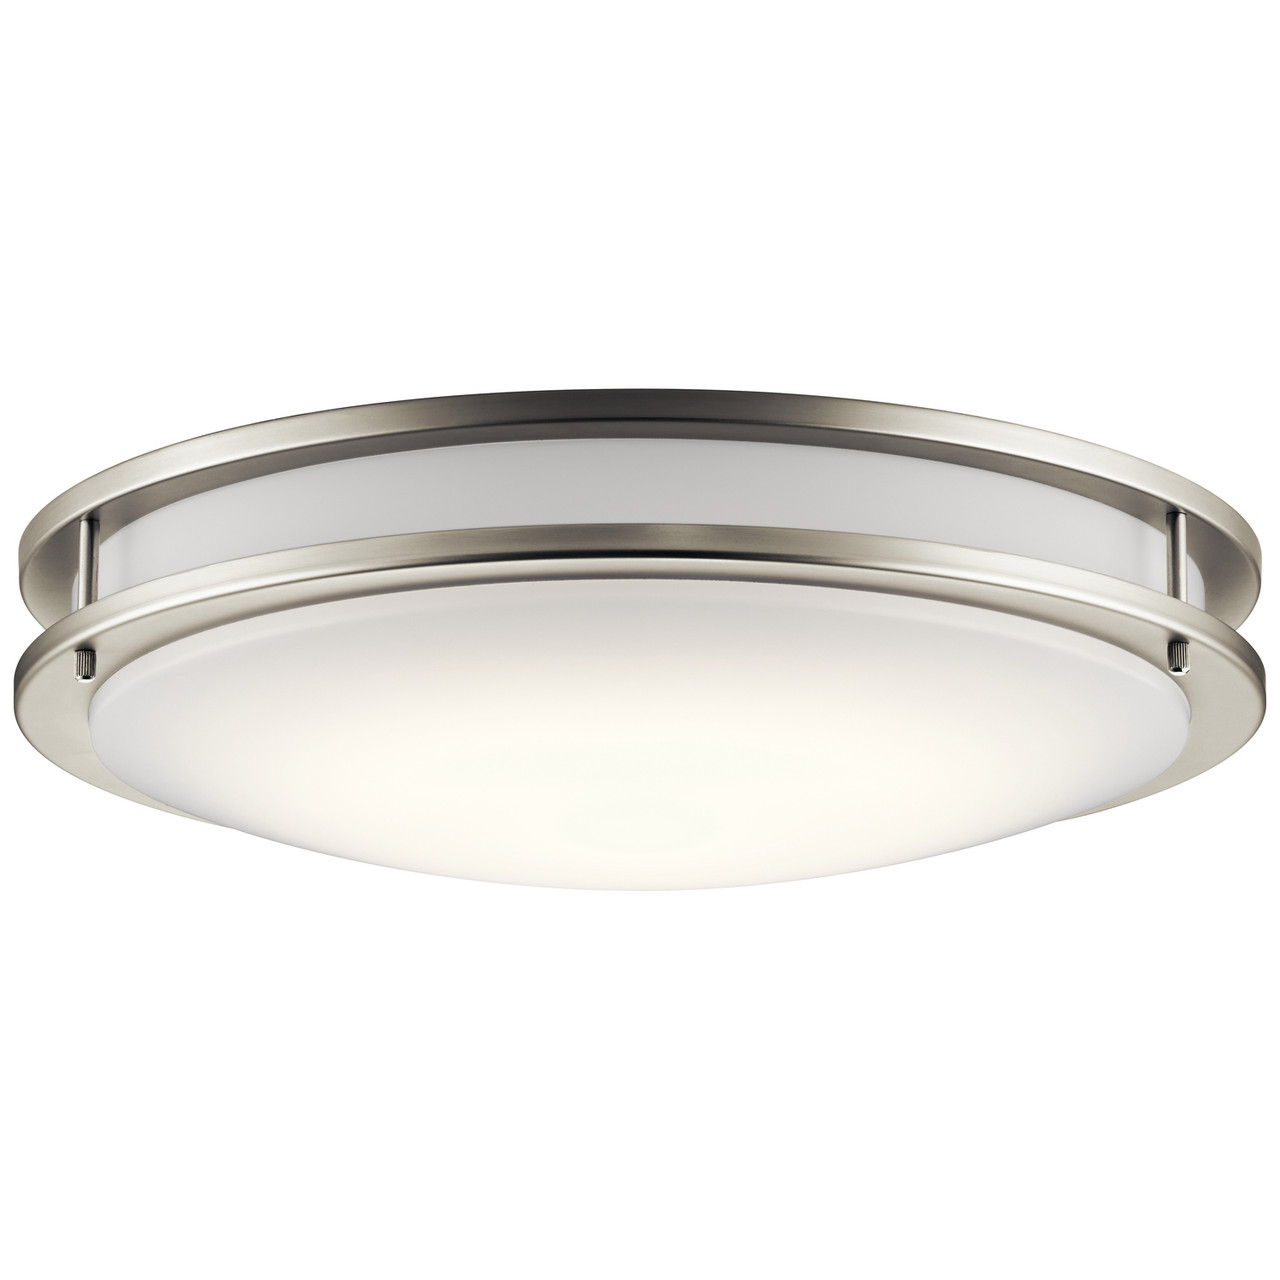 Kichler Flush Mount Brushed Nickel, White Diffuser, Wall or Ceiling Mount, 1790 Lumens, Dimmable, 120V, 34W, 3000K (10786NILED)